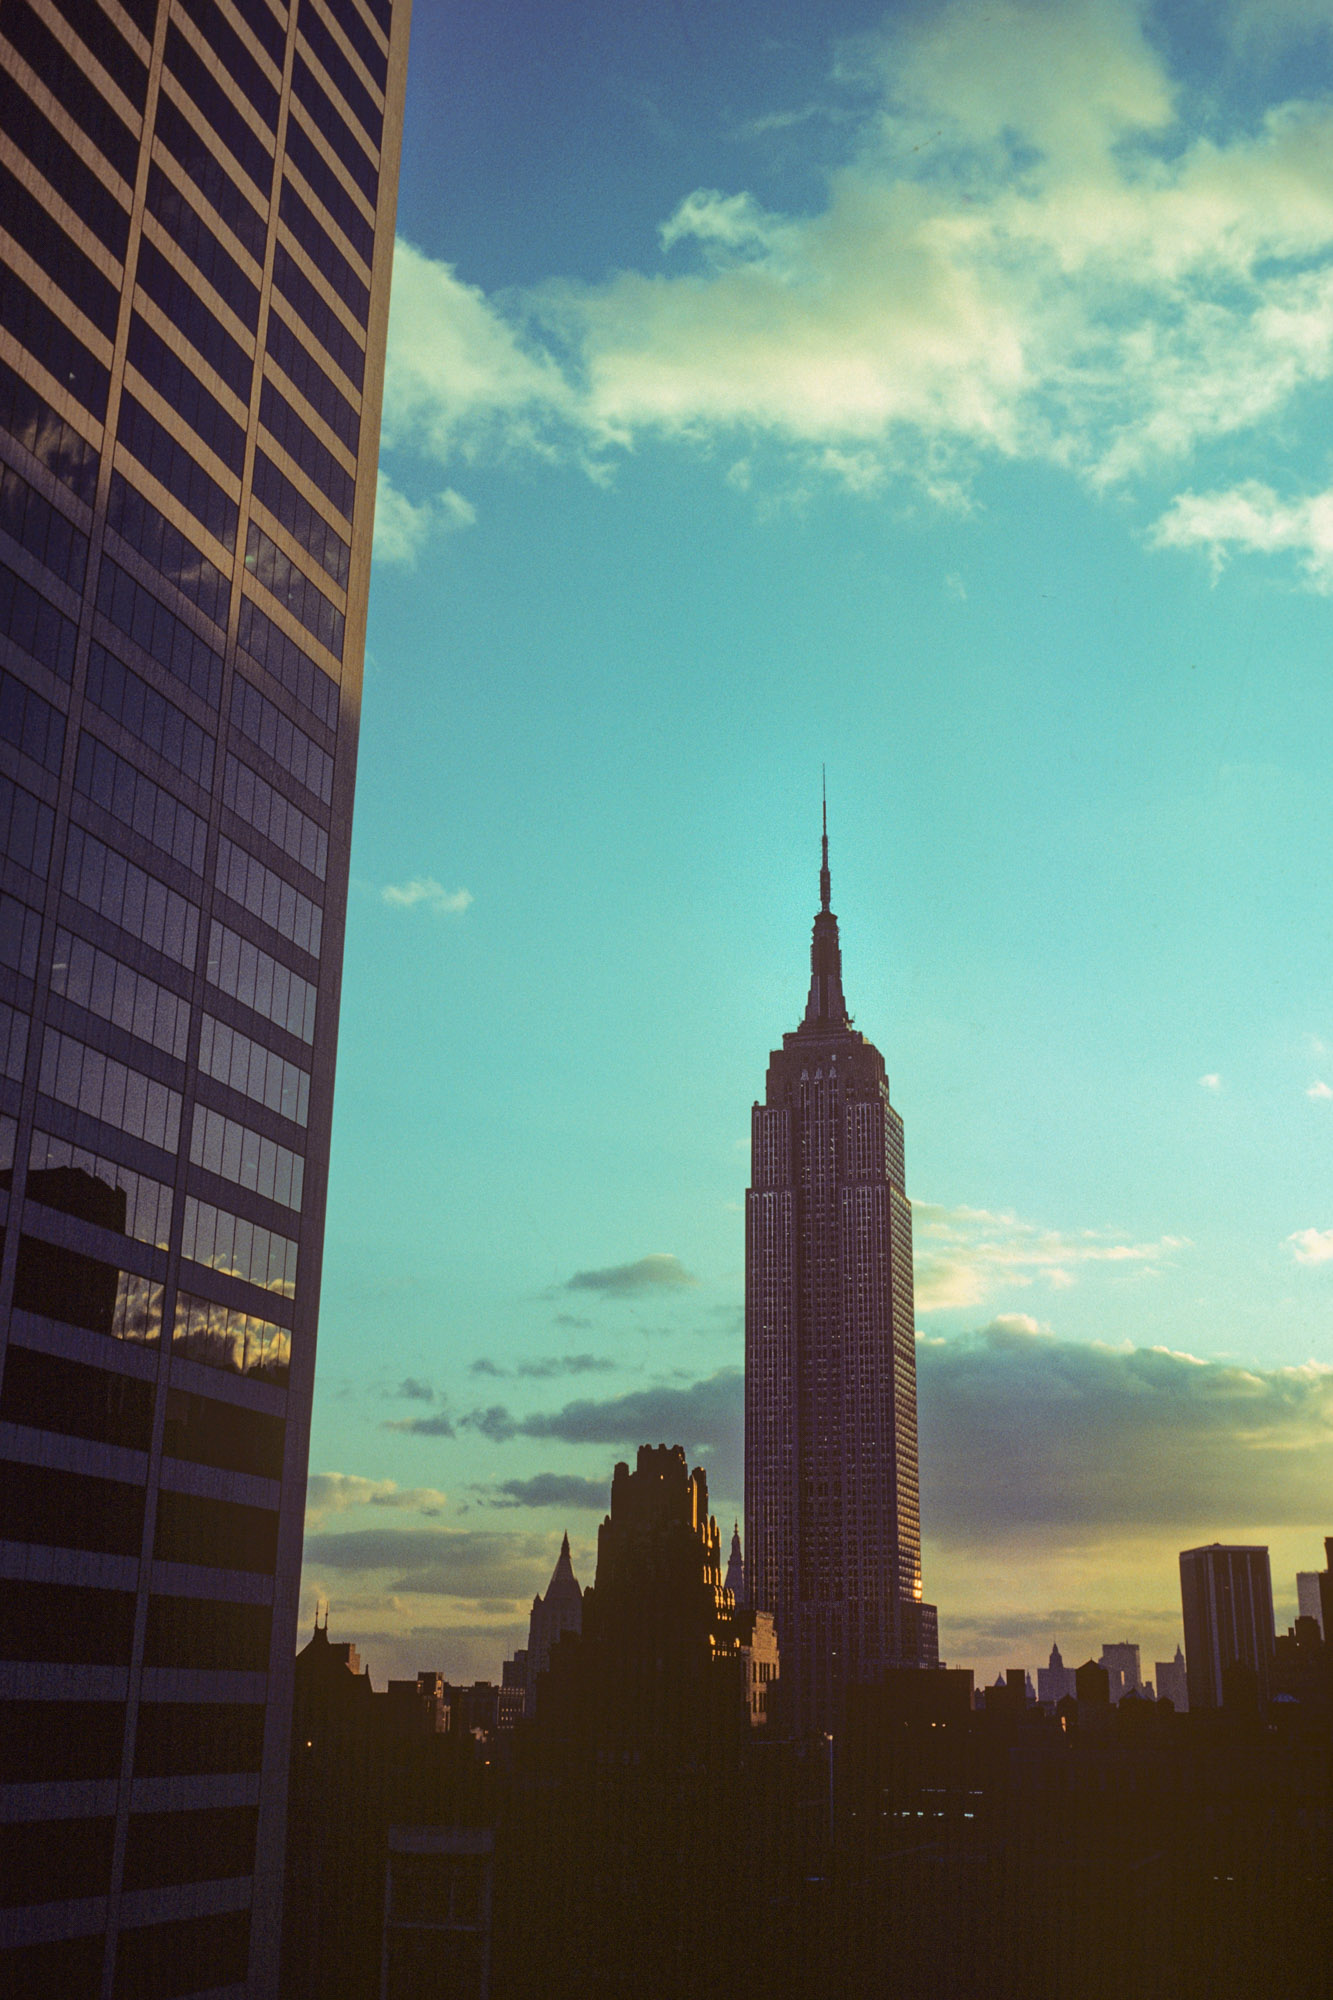 the empire state building in NYC at dusk